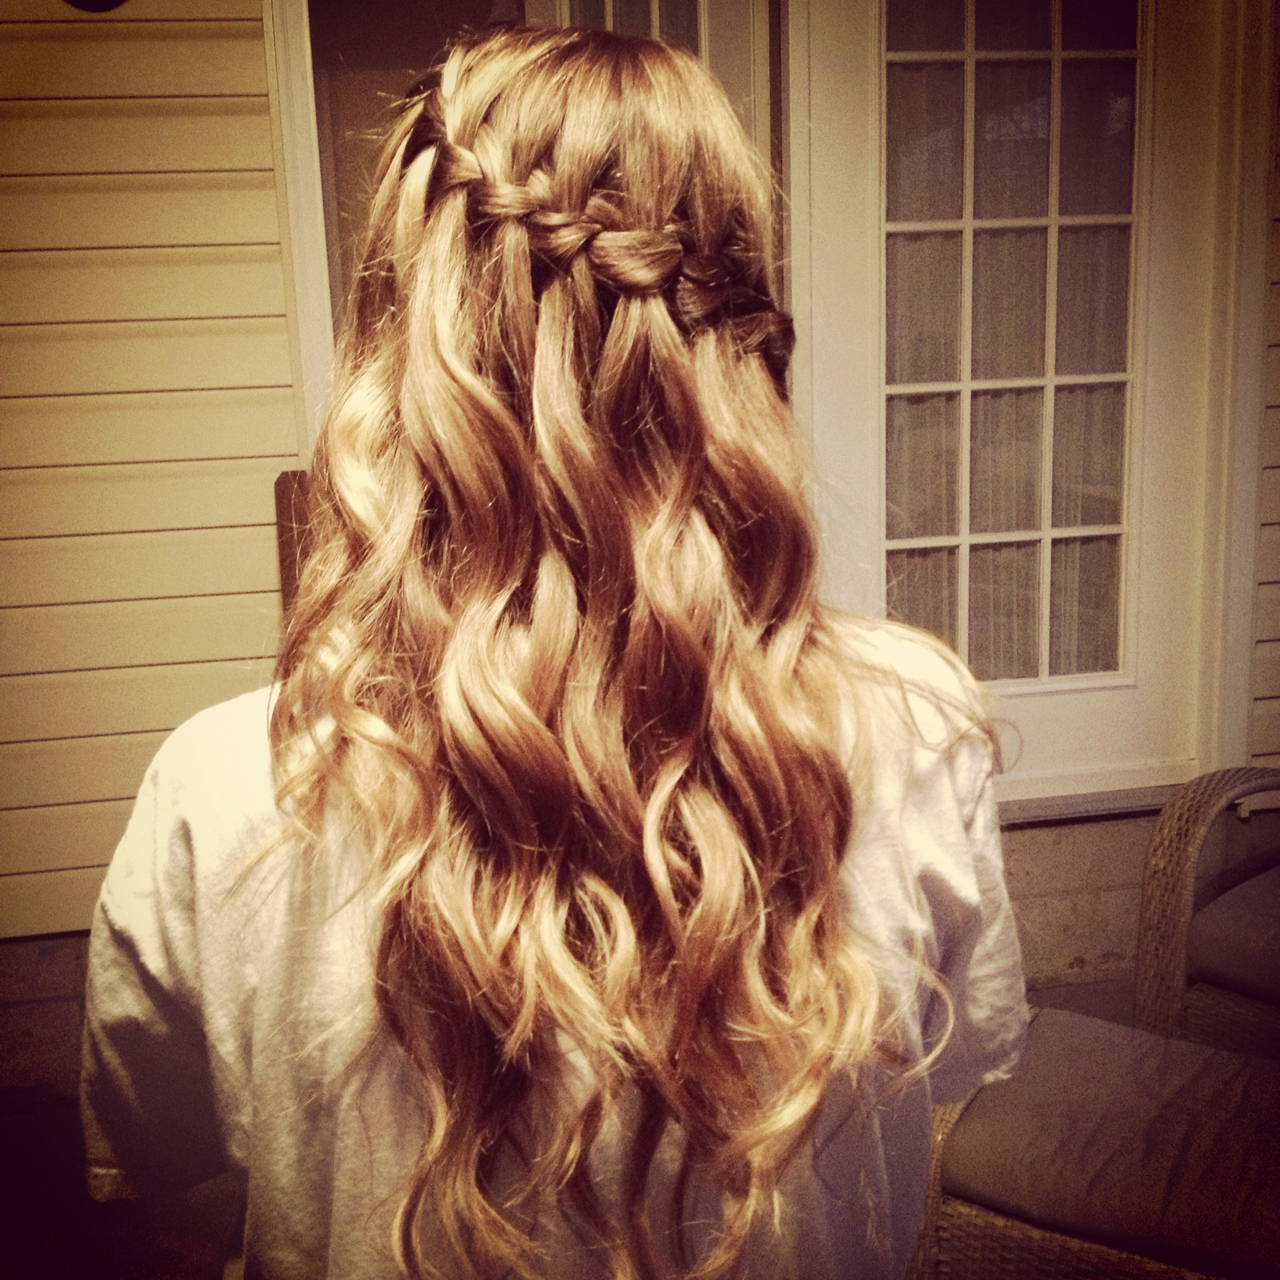 66 Images About Hairstyles On We Heart It See More About Hair Hairstyle And Girl